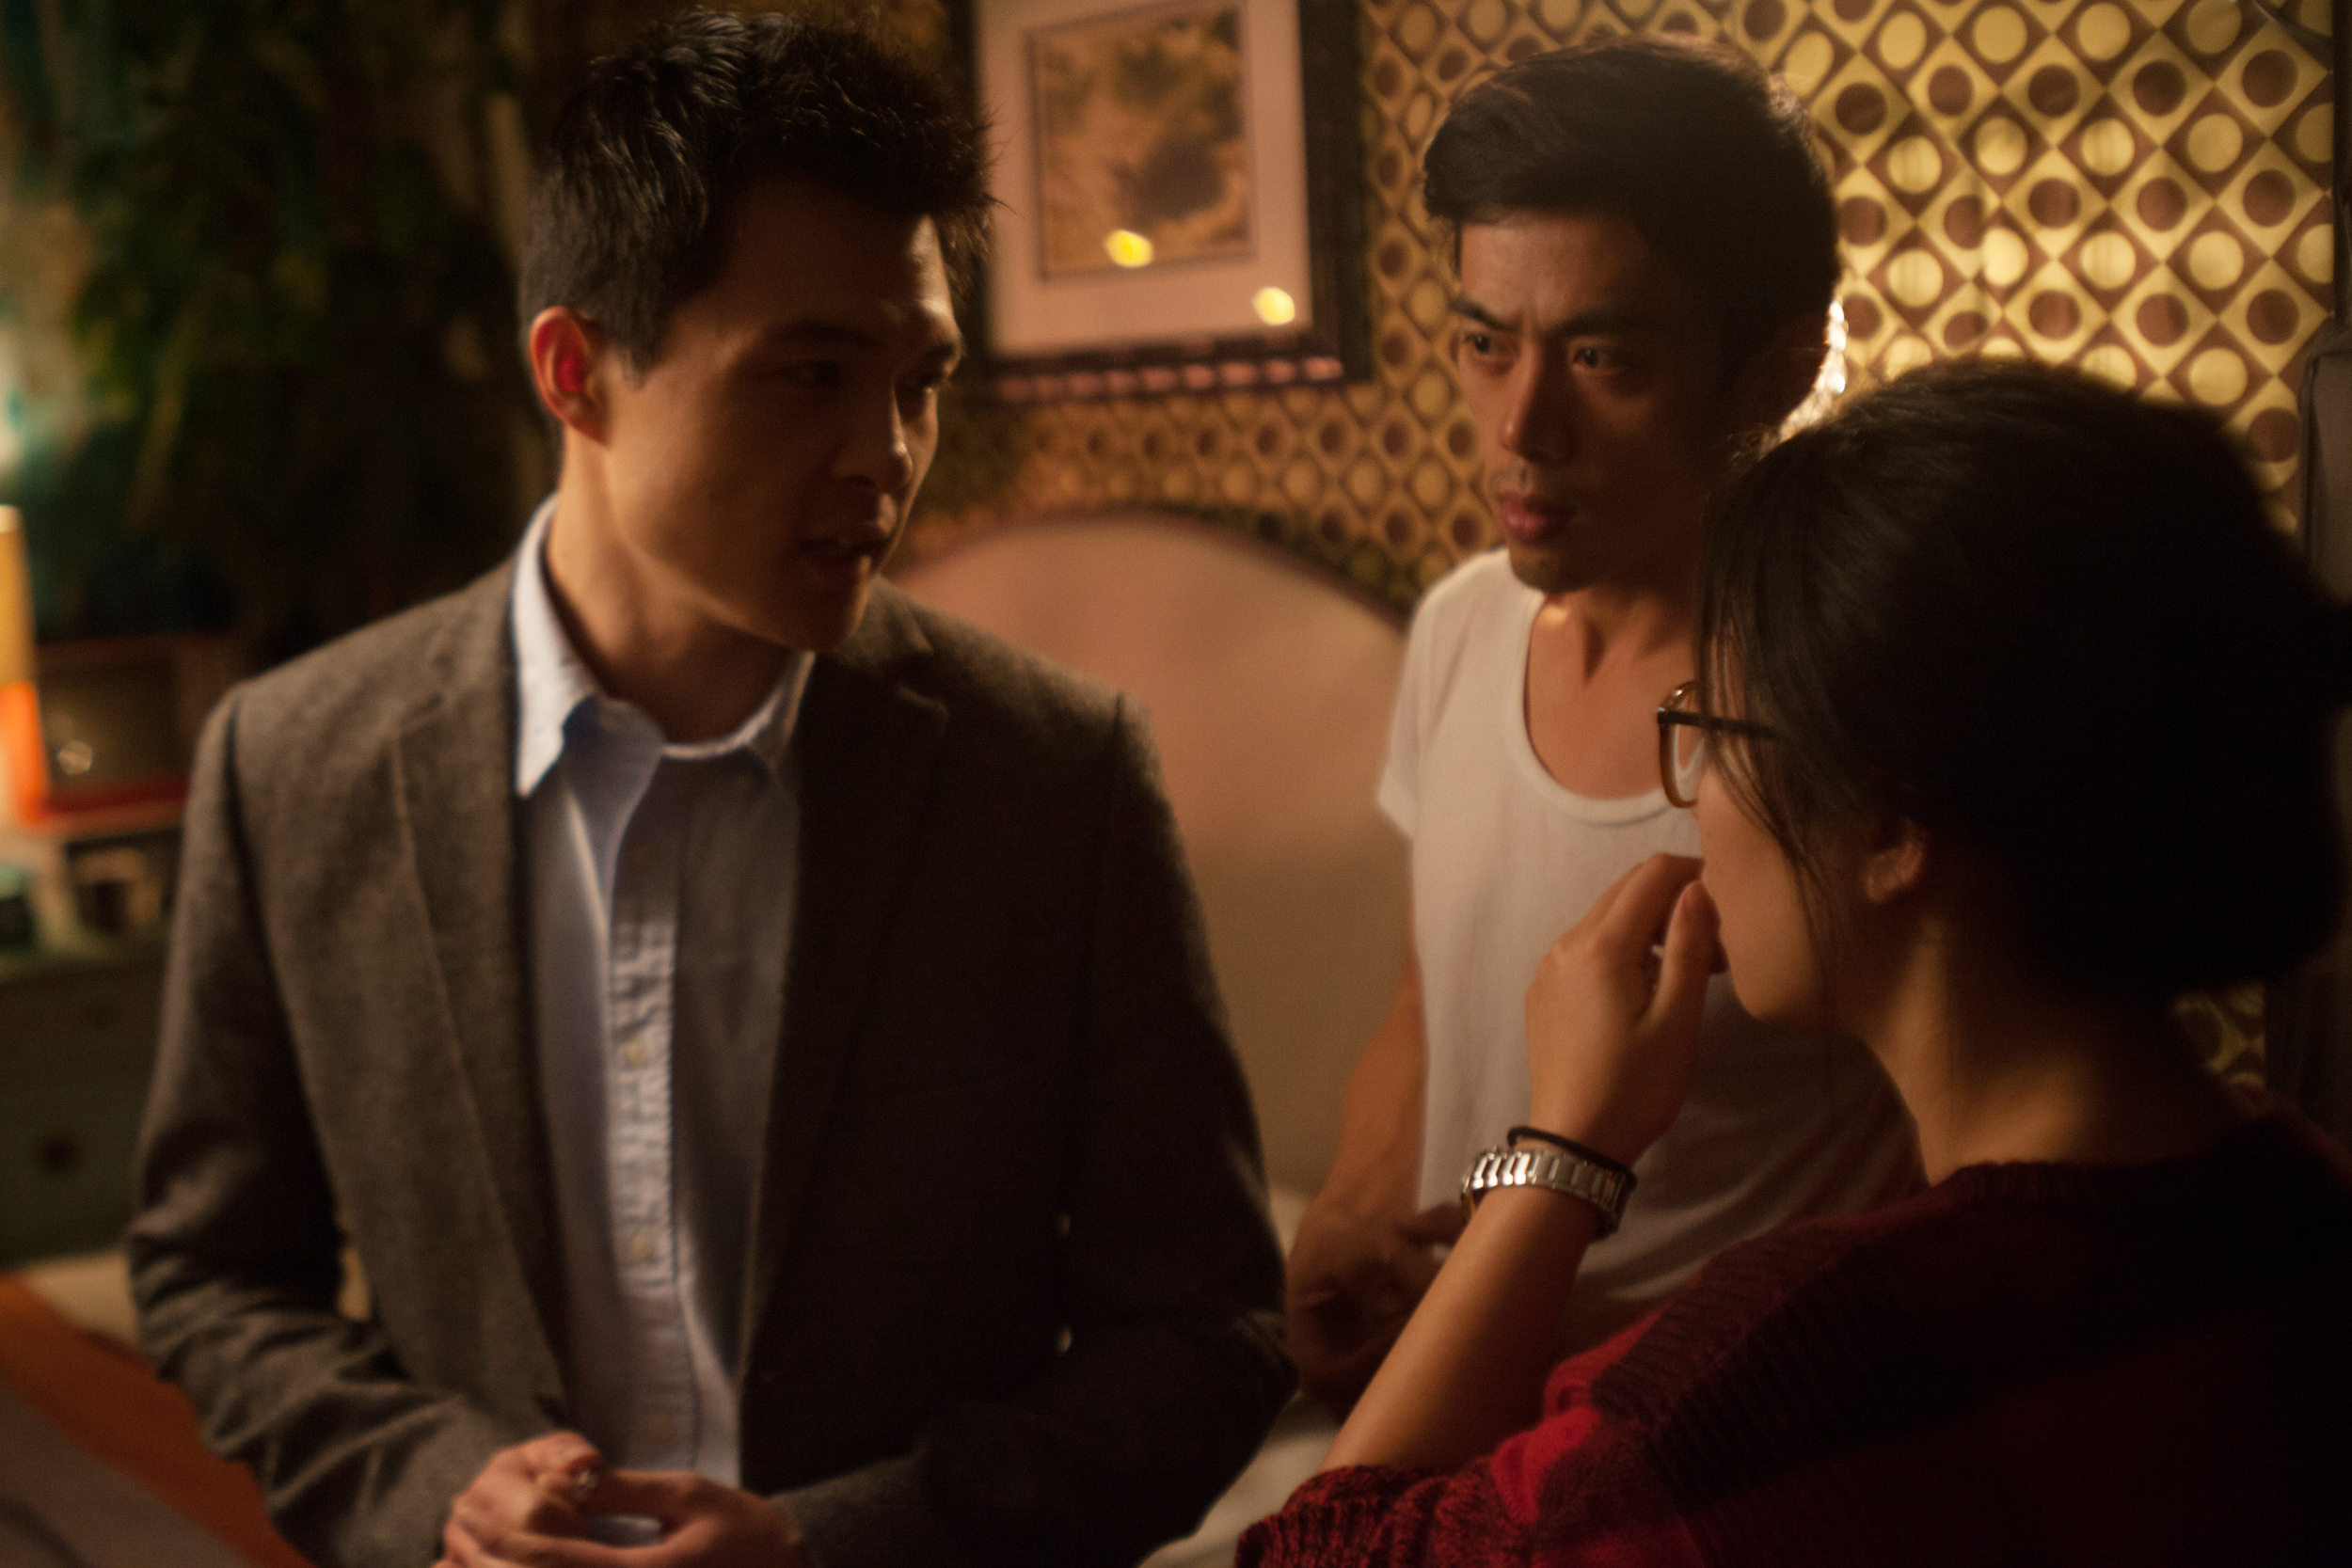 Director Leon Le and AD Qinzhu going over the lines with actor Zilong Zee before a take.